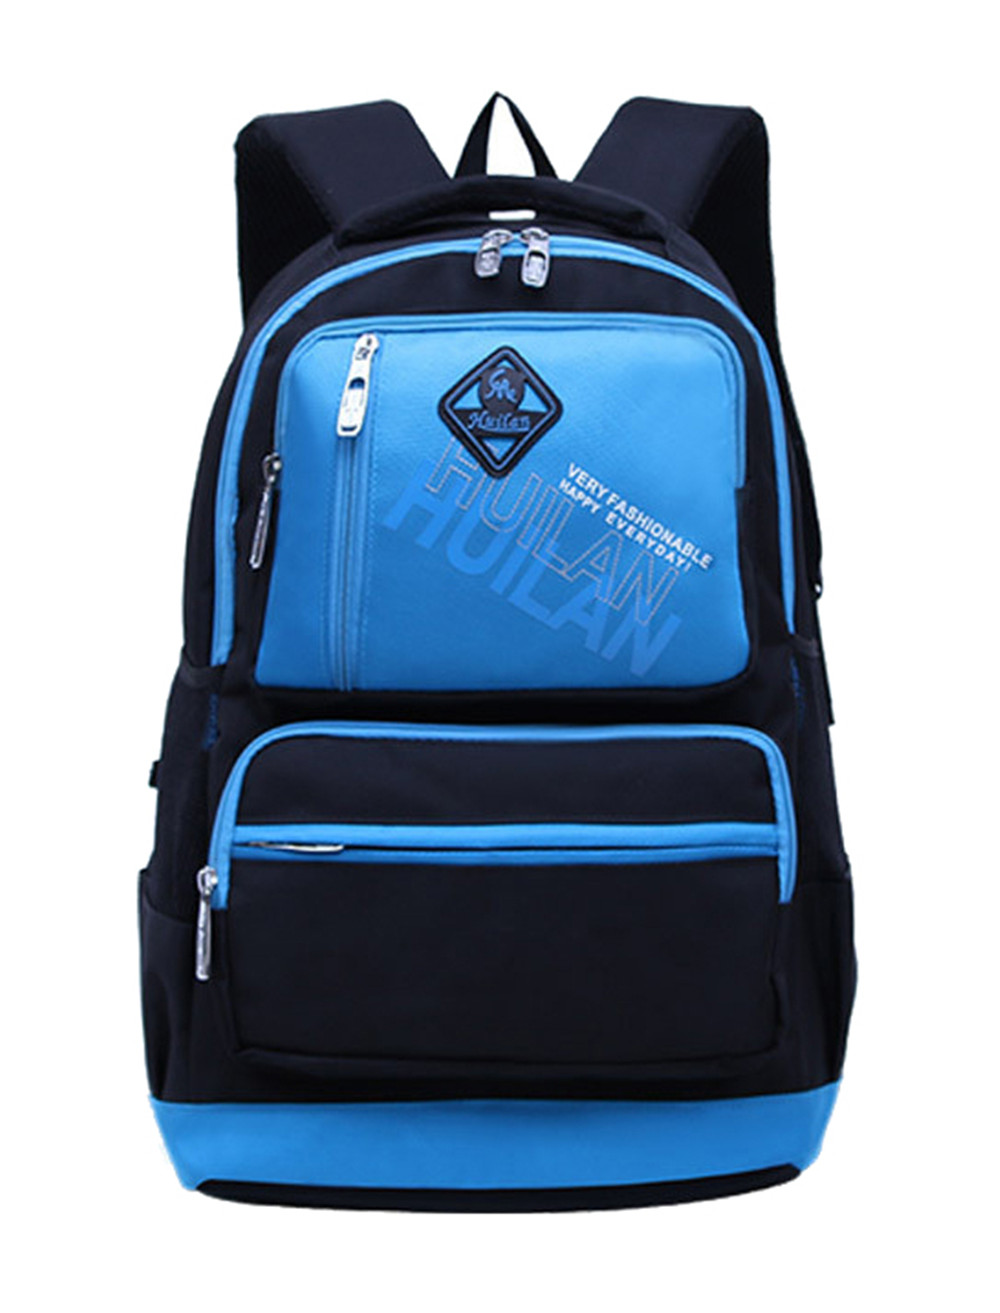 Hot New Children School Bags For Teenagers Girls Boys Orthopedic School Backpacks Kids Schoolbag men laptop backpack Mochilas